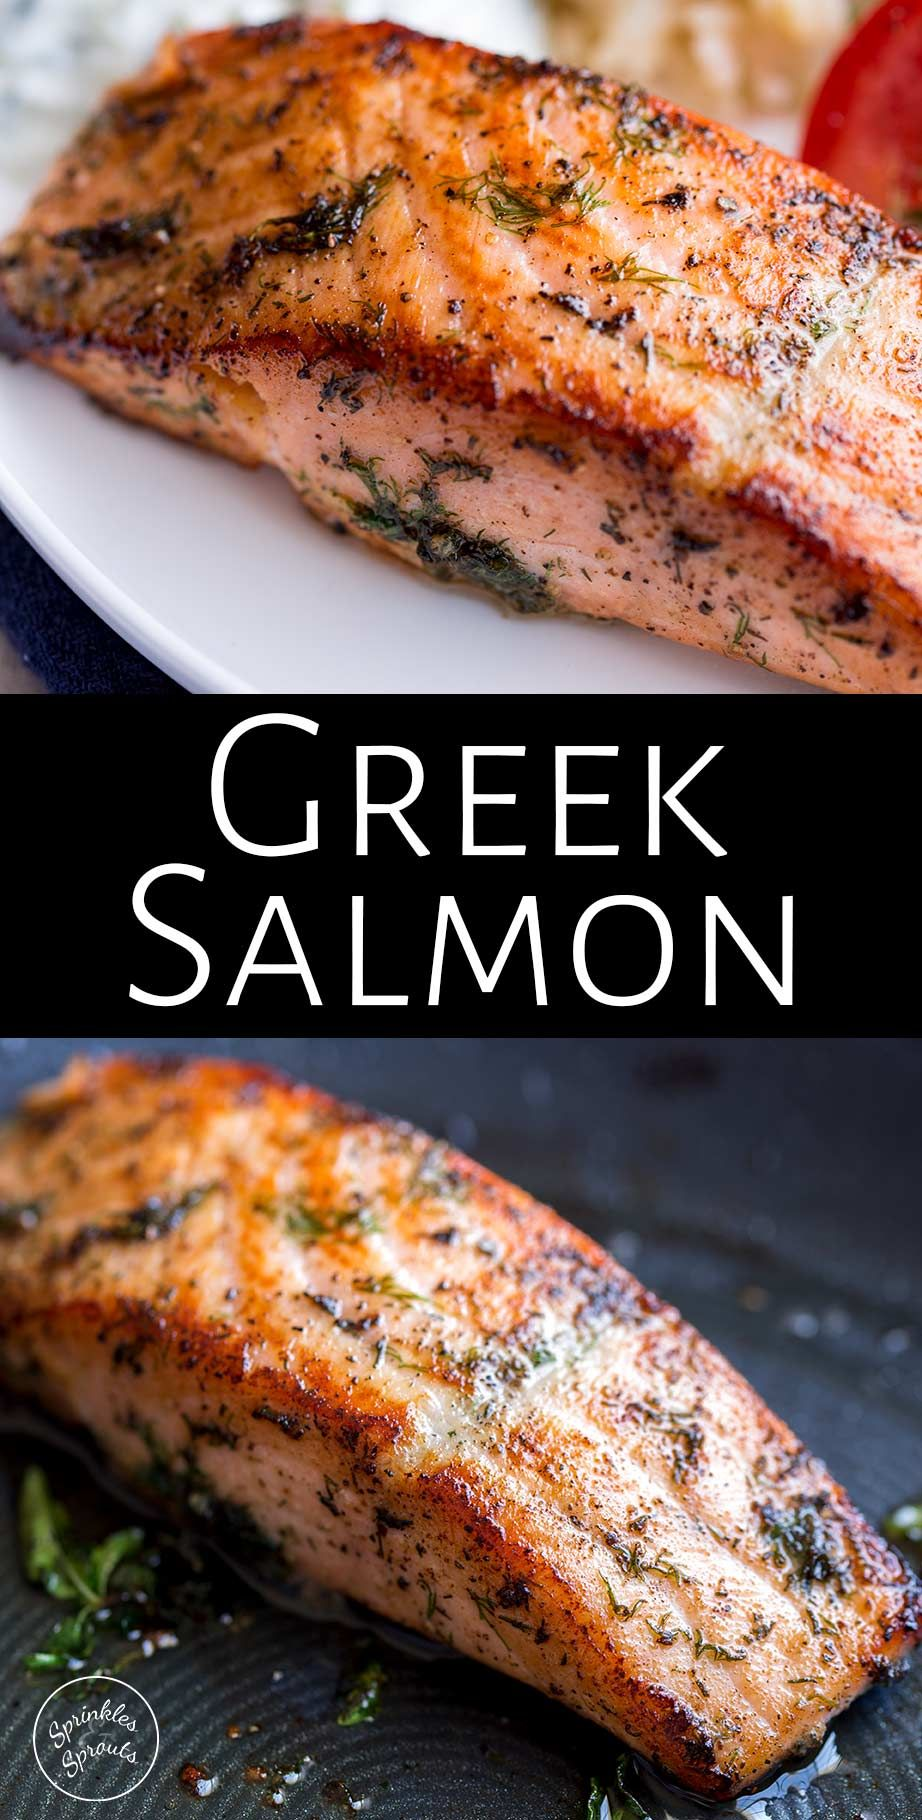 Greek Salmon with Lemon and Dill | Sprinkles and Sprouts